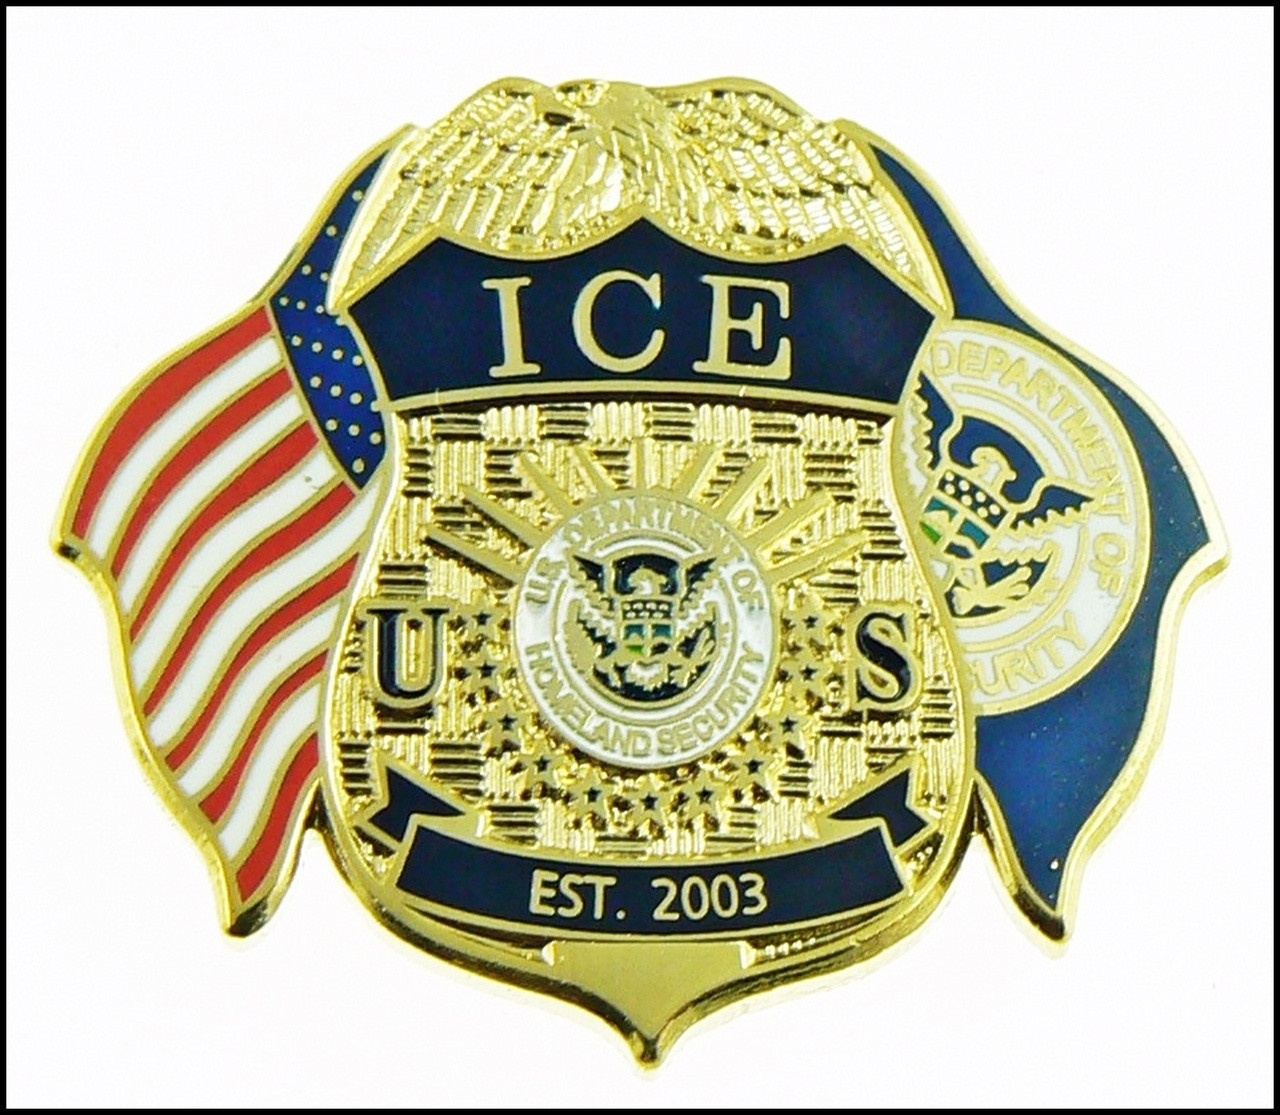 Immigration And Customs Enforcement Mini Badge And Flags